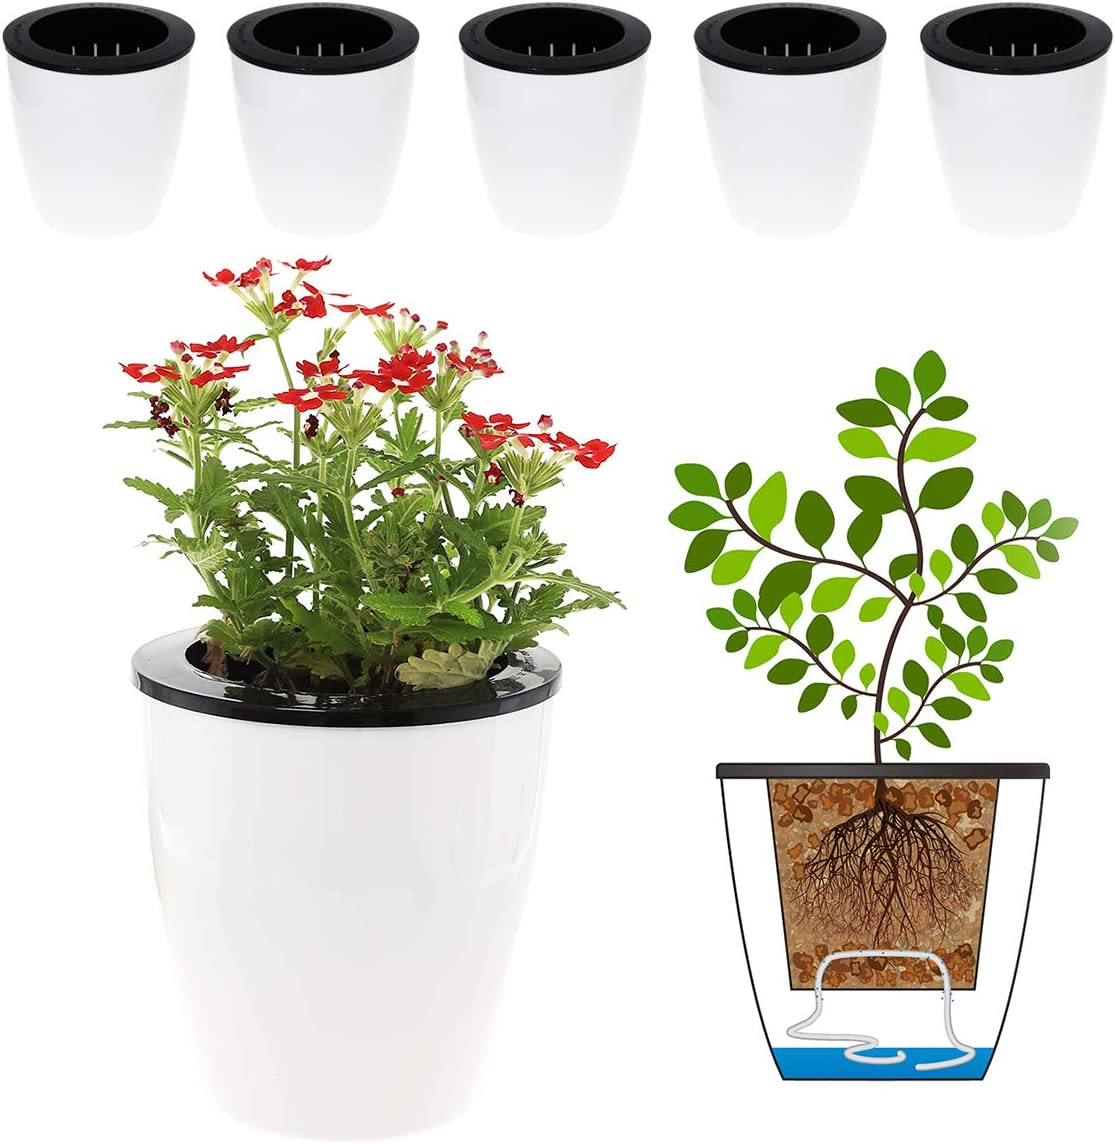 DeEFL 3 Packs 6.9 Inches Clear Self Watering Planters Large Plastic Self Watering Pots Wick Flower Pots for Indoor Plants Ocean Spider Plant Clear and White Orchid African Violet